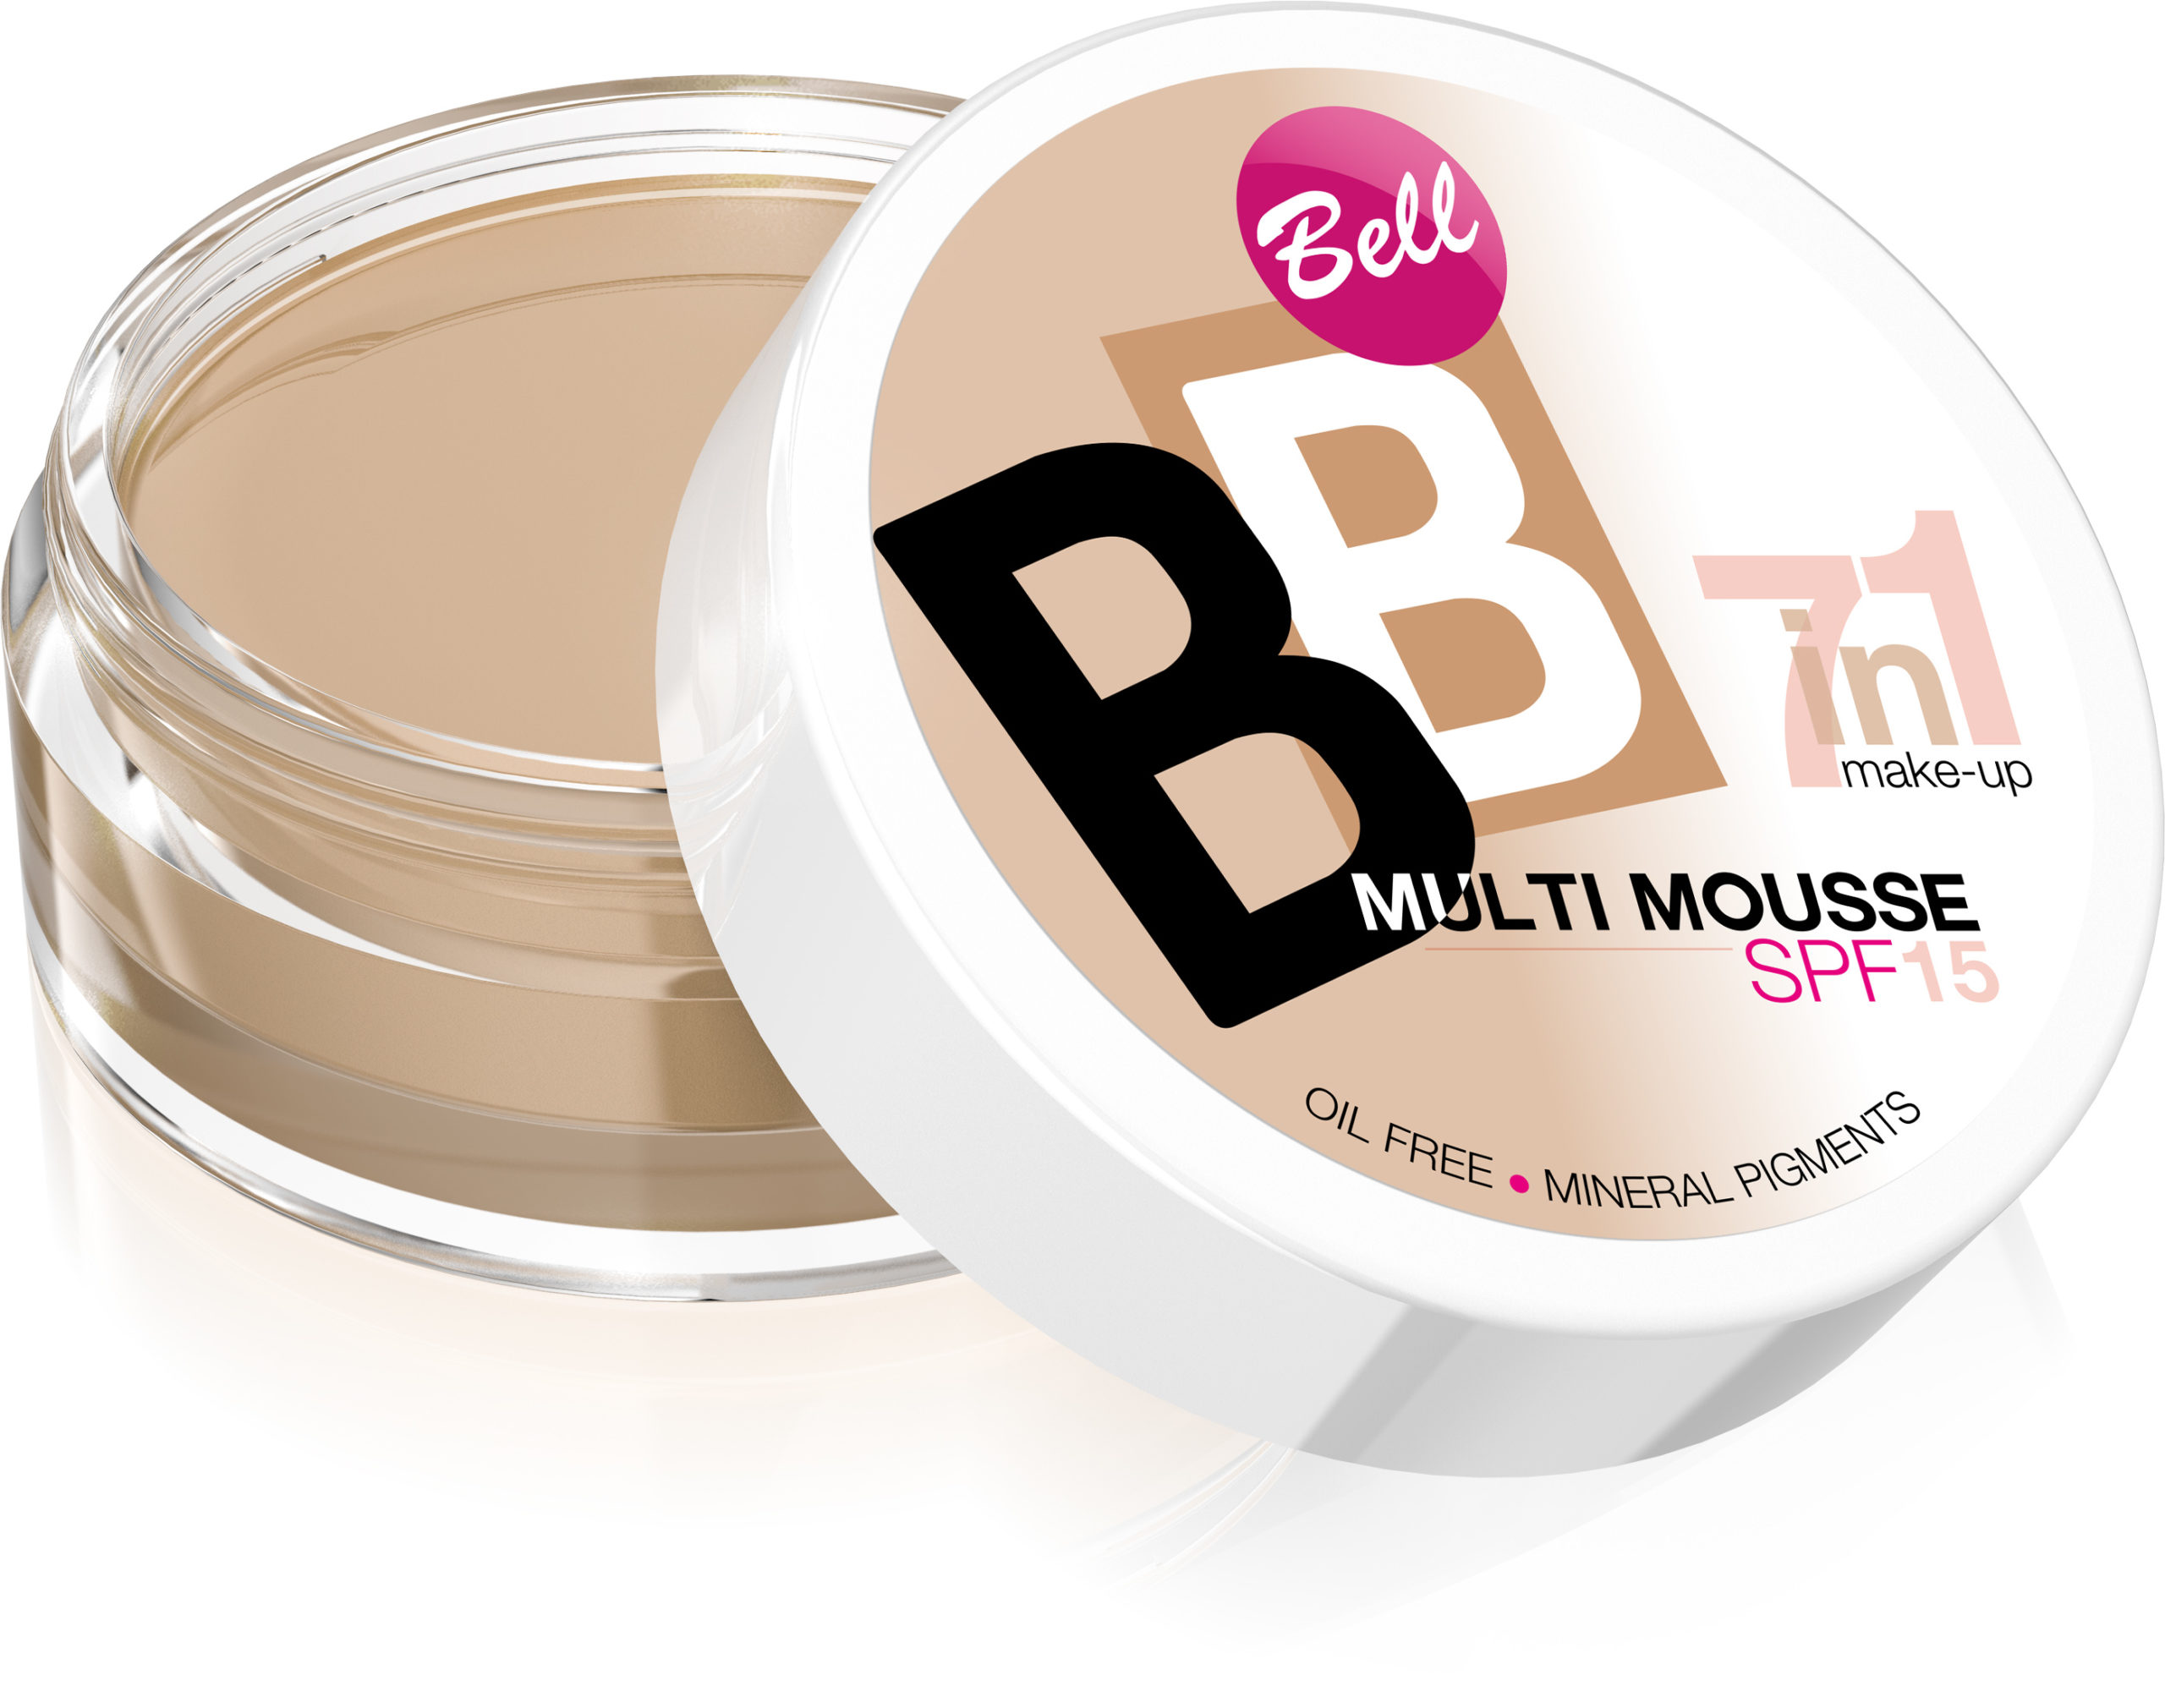 BB Multi Mousse 7 in 1